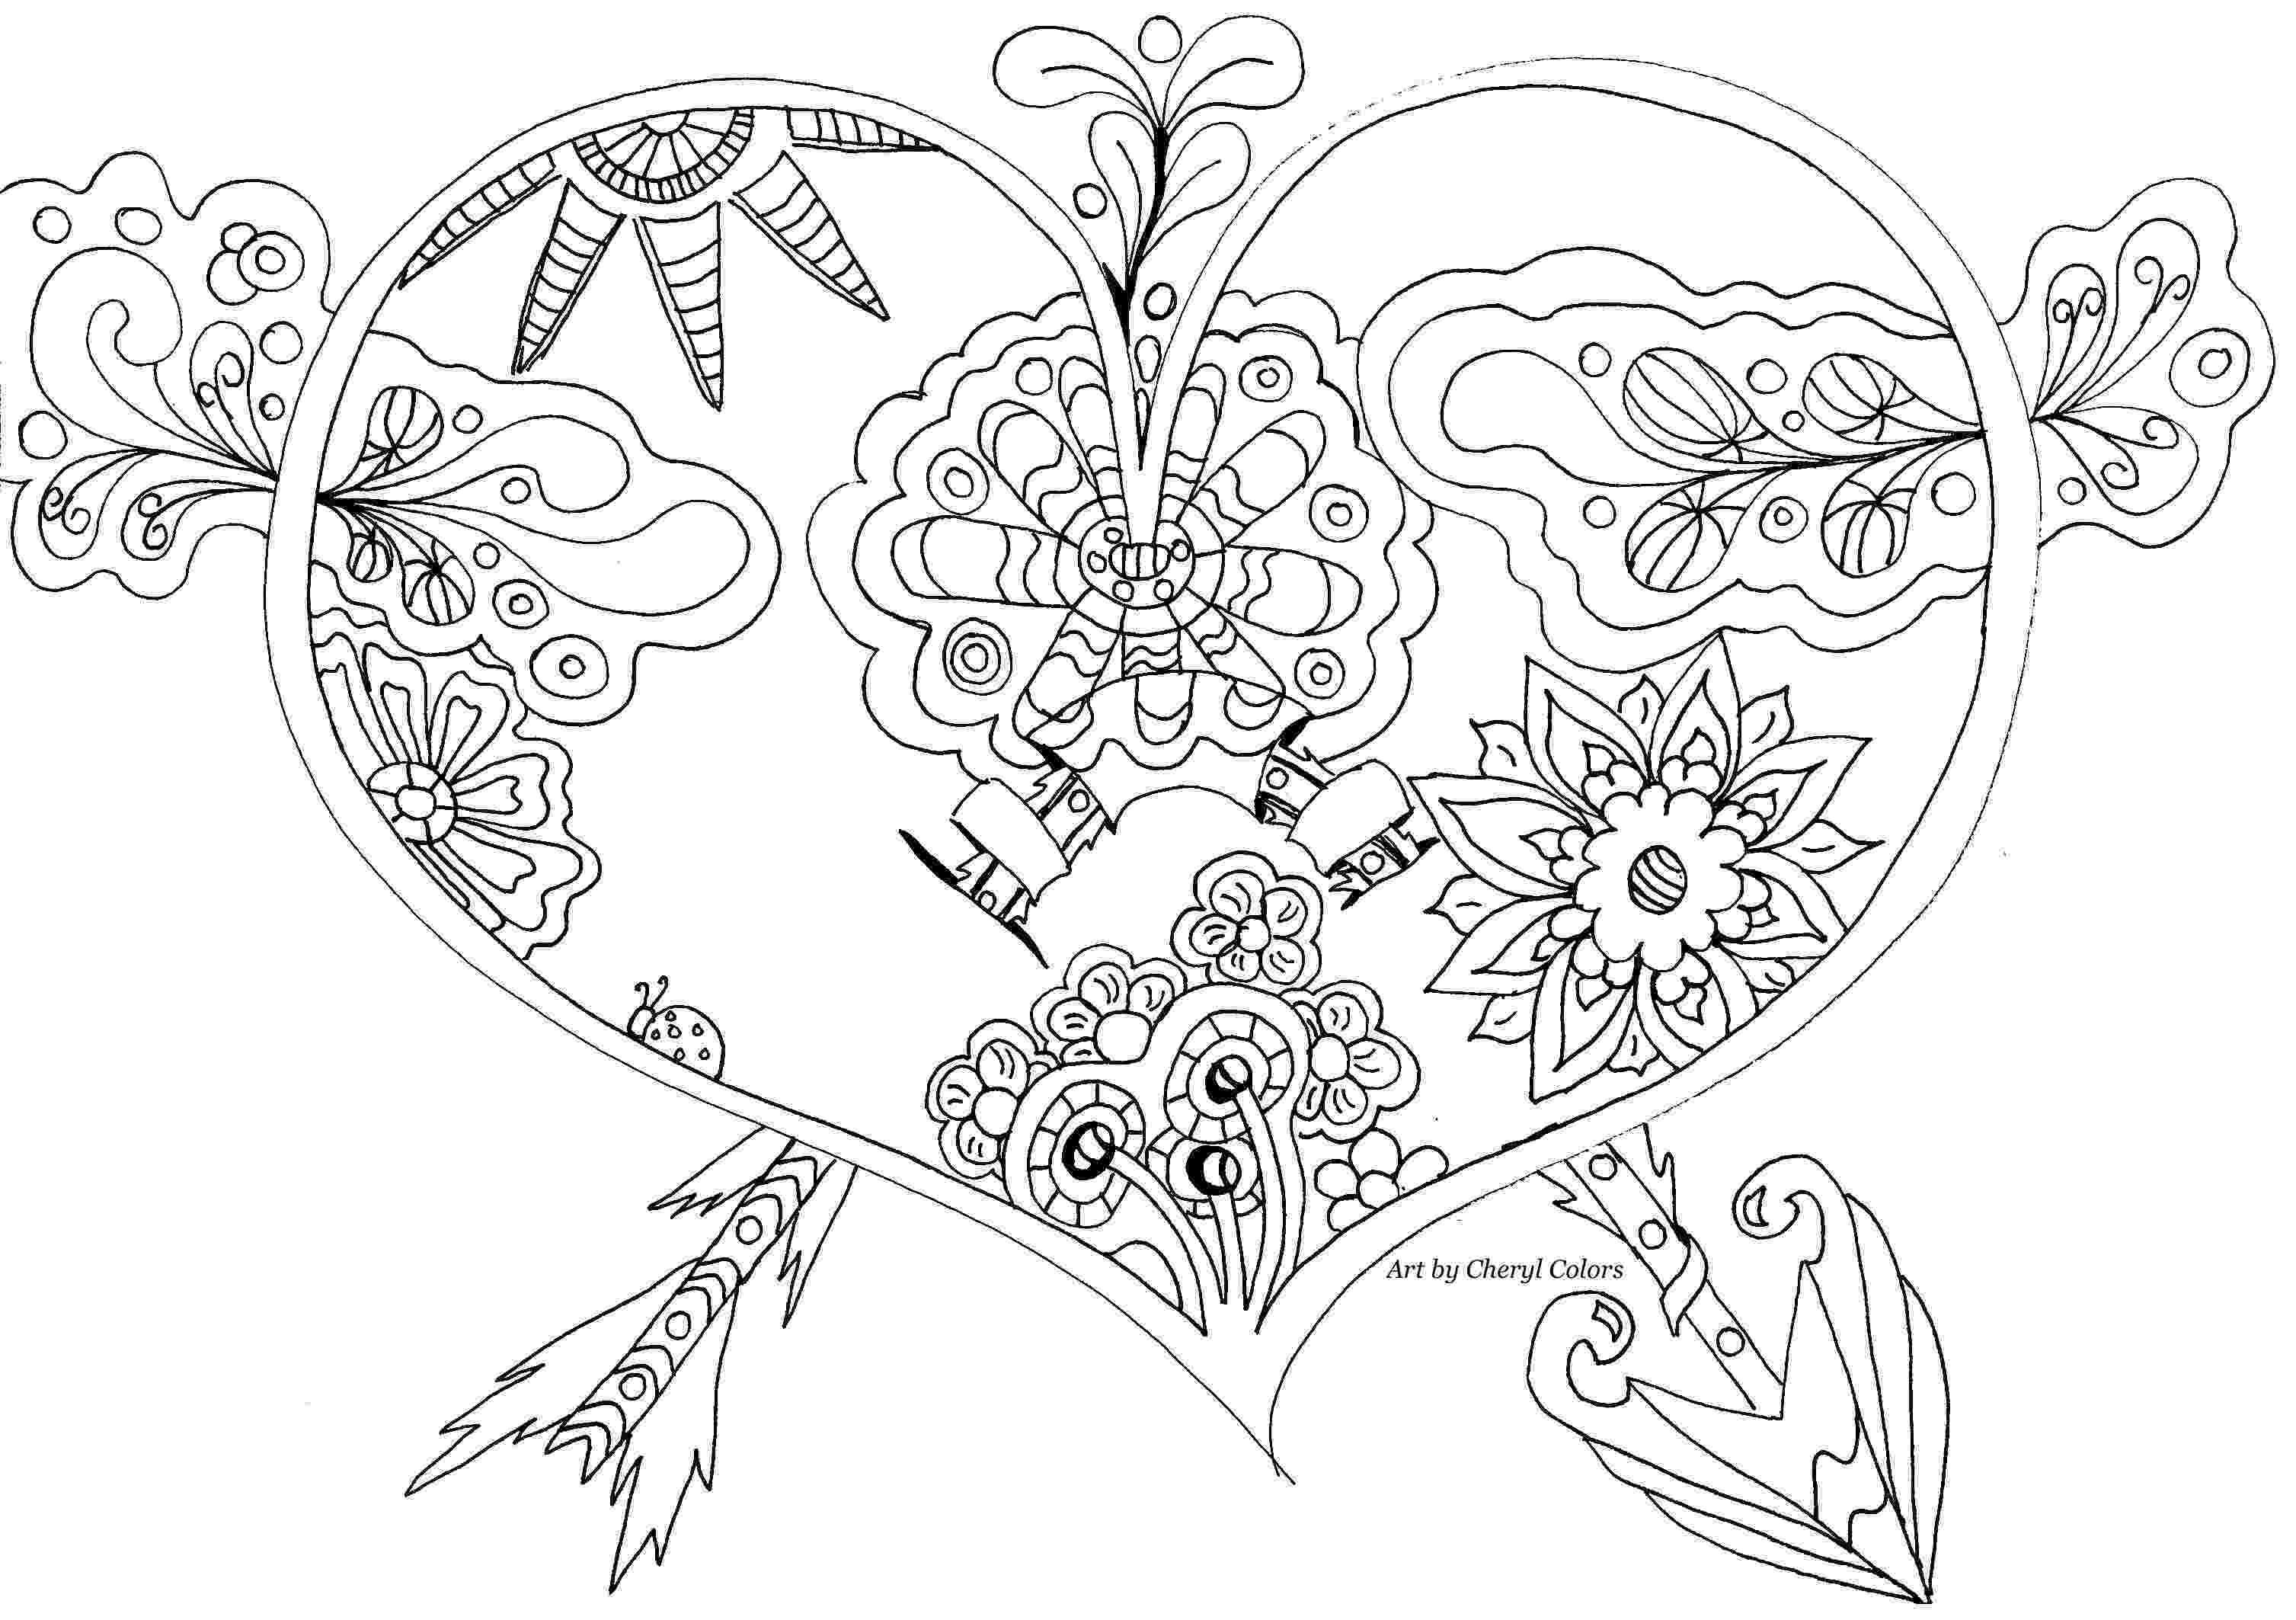 coloring book for adults where to 24 of the most creative free adult coloring pages kenal coloring where book for adults to